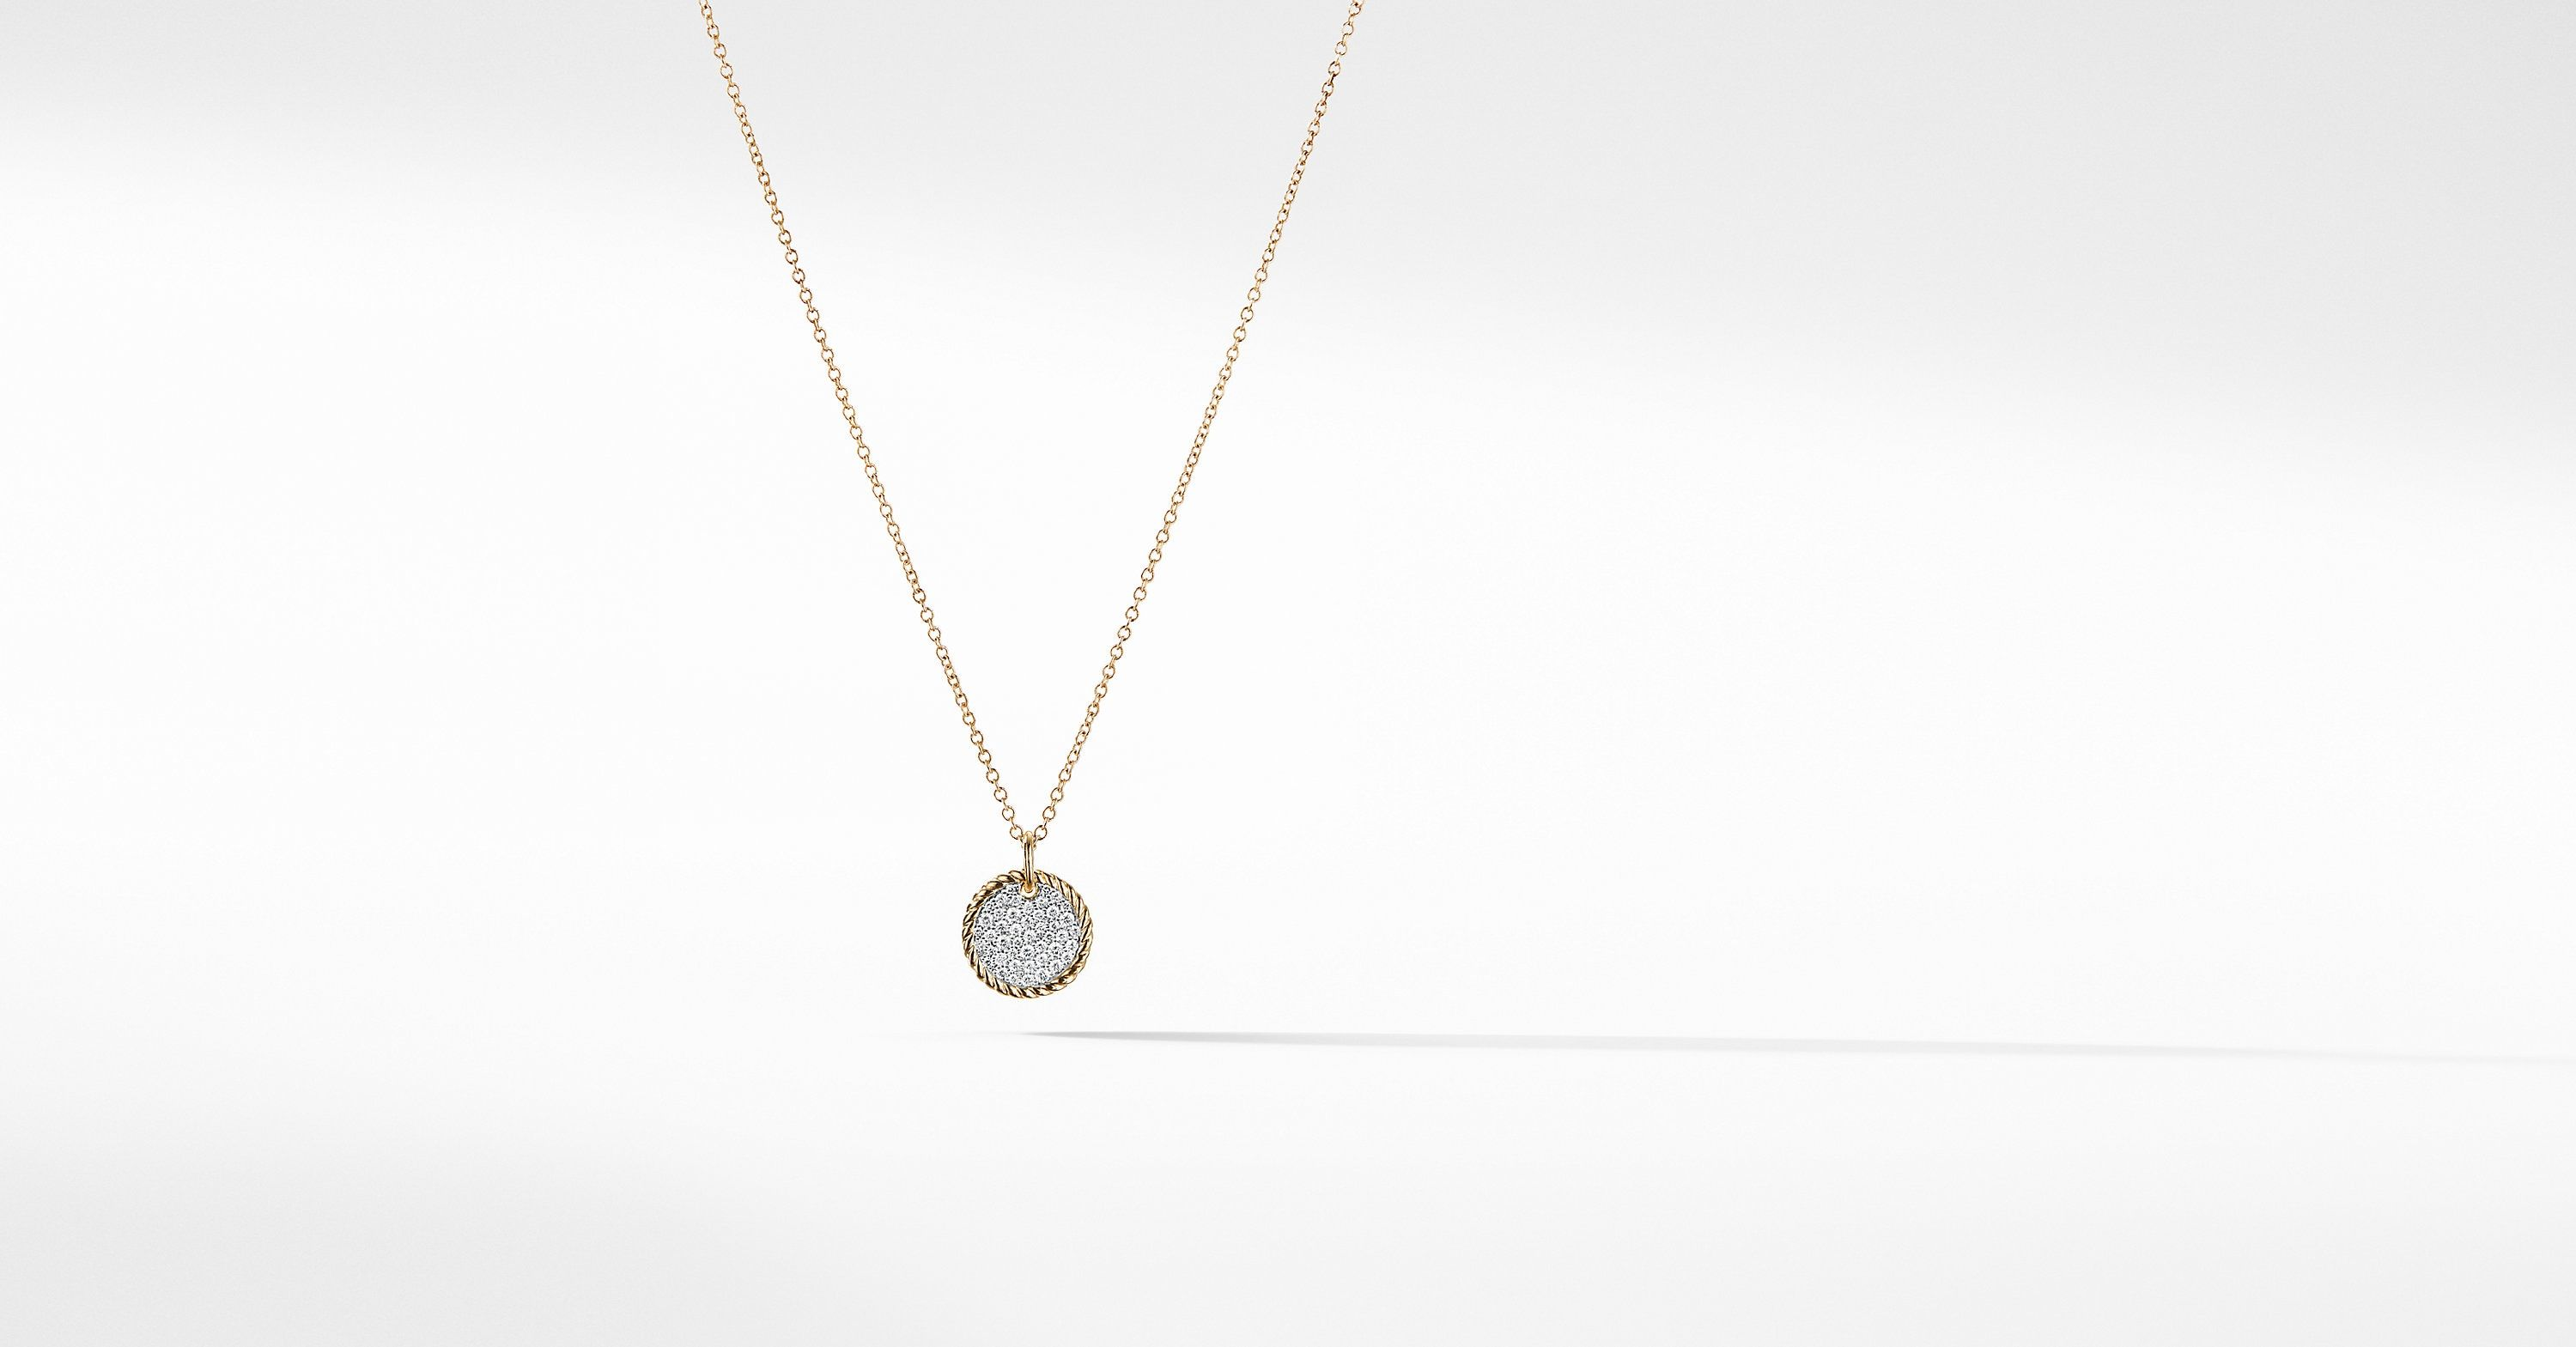 Cable Collectibles Pave Charm Necklace With Diamonds In 18k Gold David Yurman In 2020 Charm Necklace Necklace 18k Gold